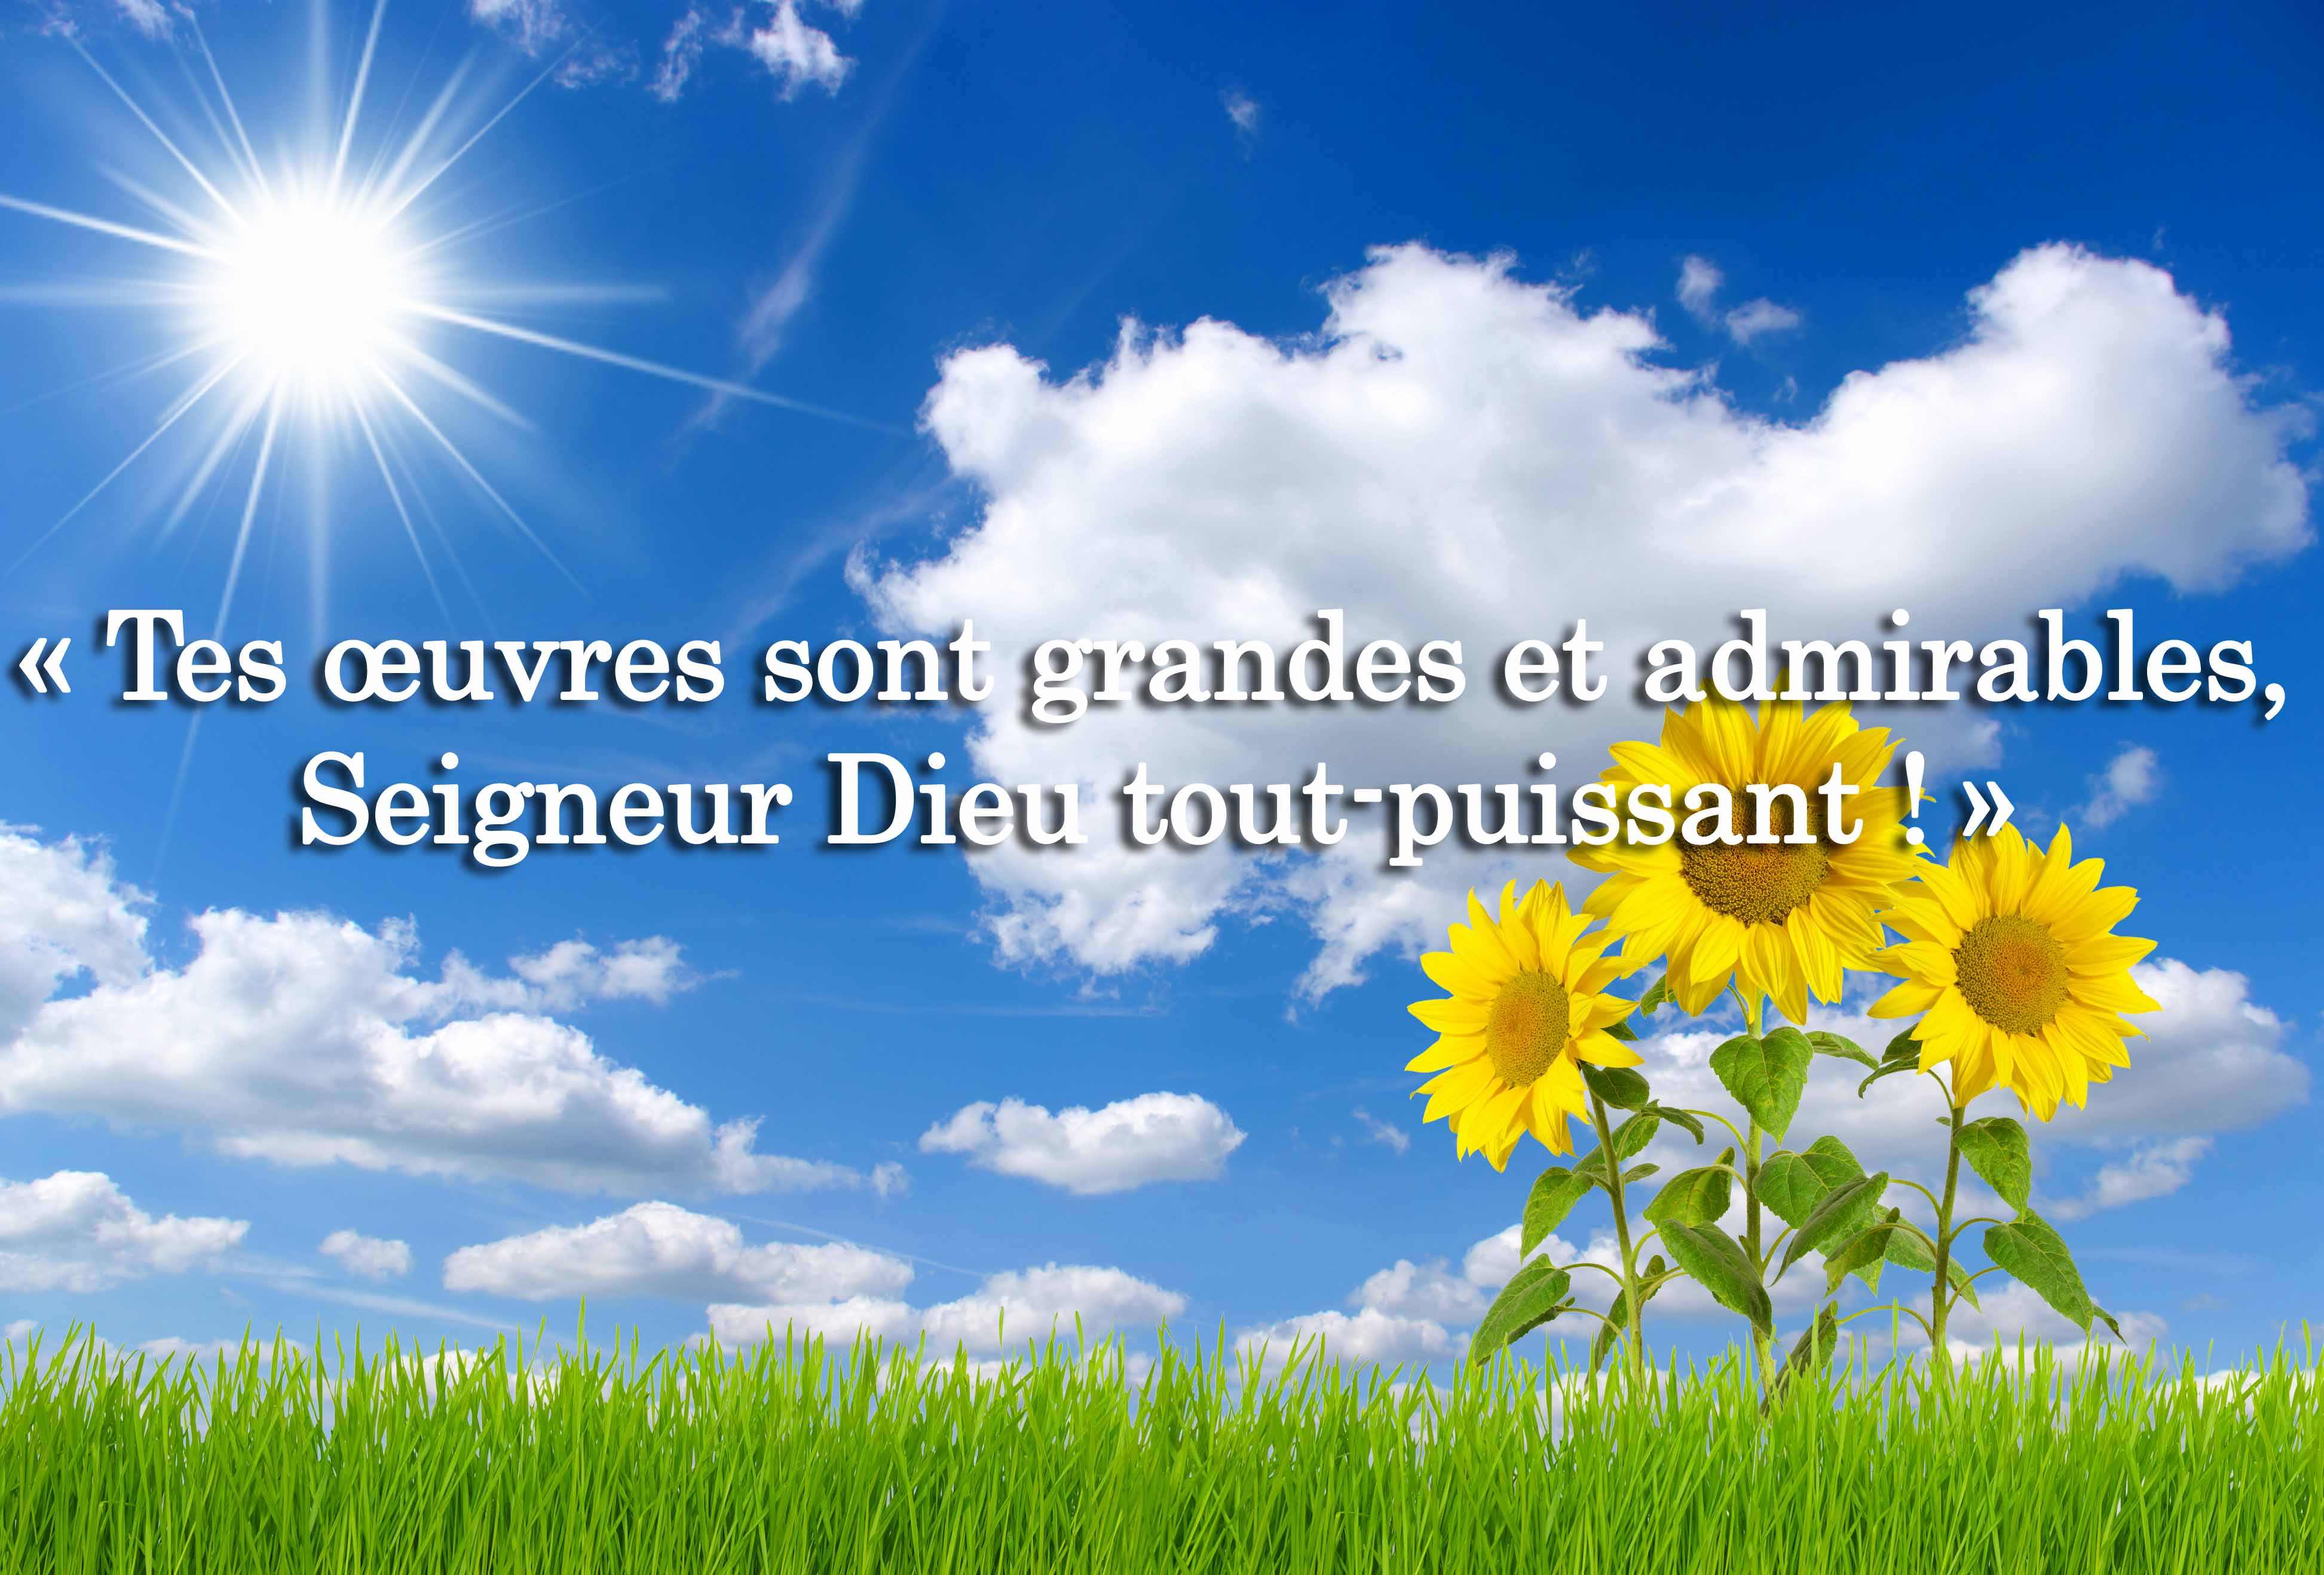 Tes oeuvres sont admirables